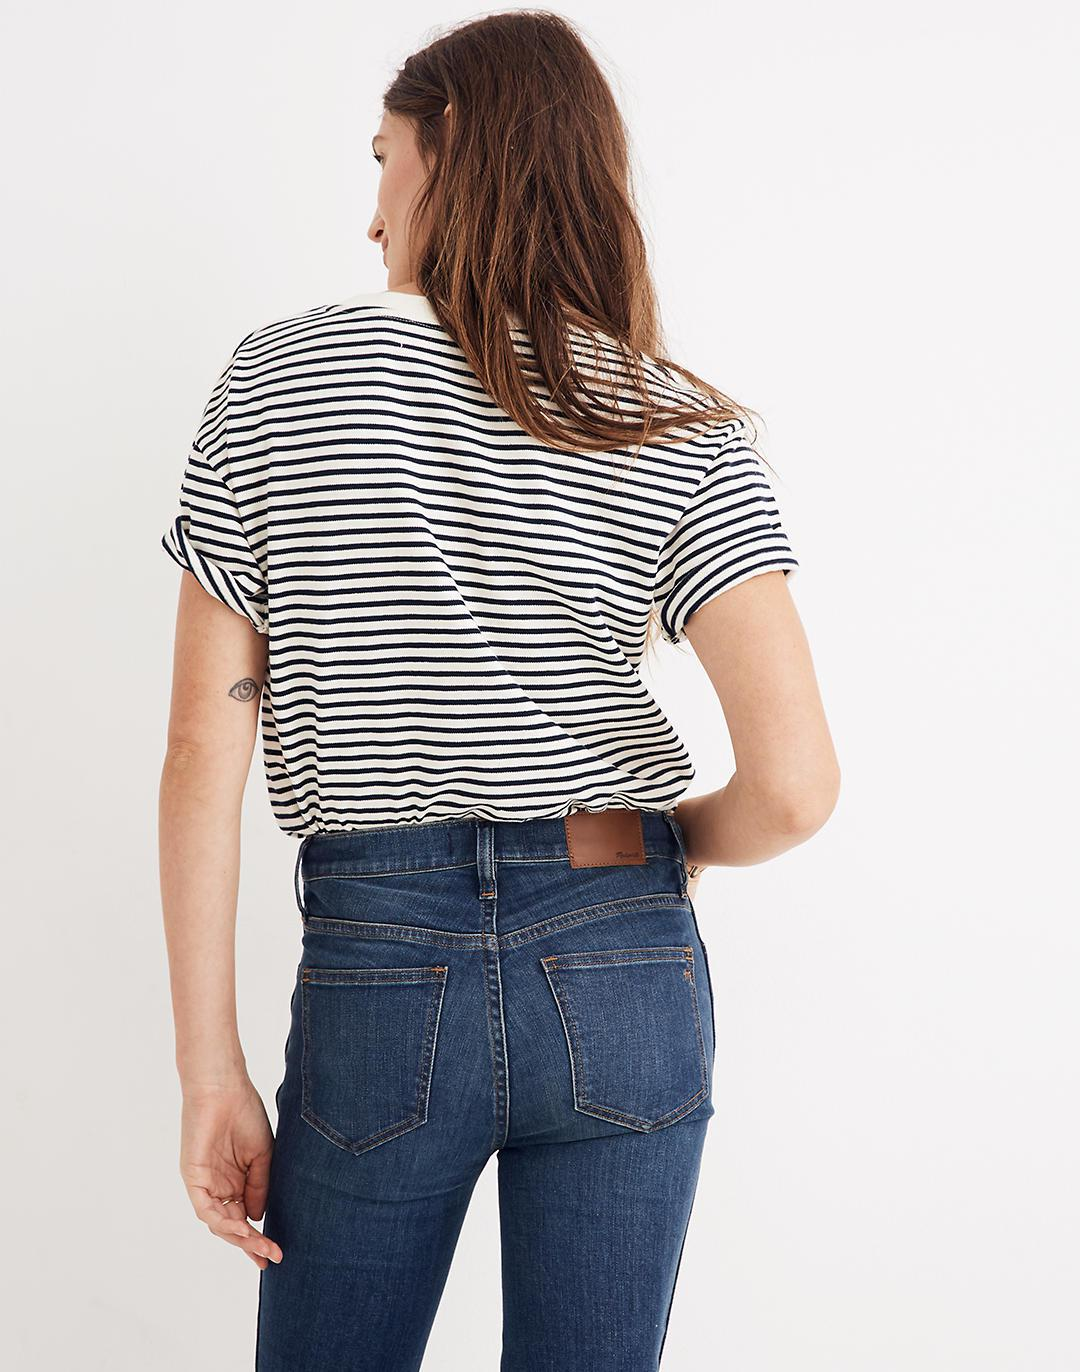 """Taller 10"""" High-Rise Skinny Jeans in Elinor Wash: Eco Edition 1"""